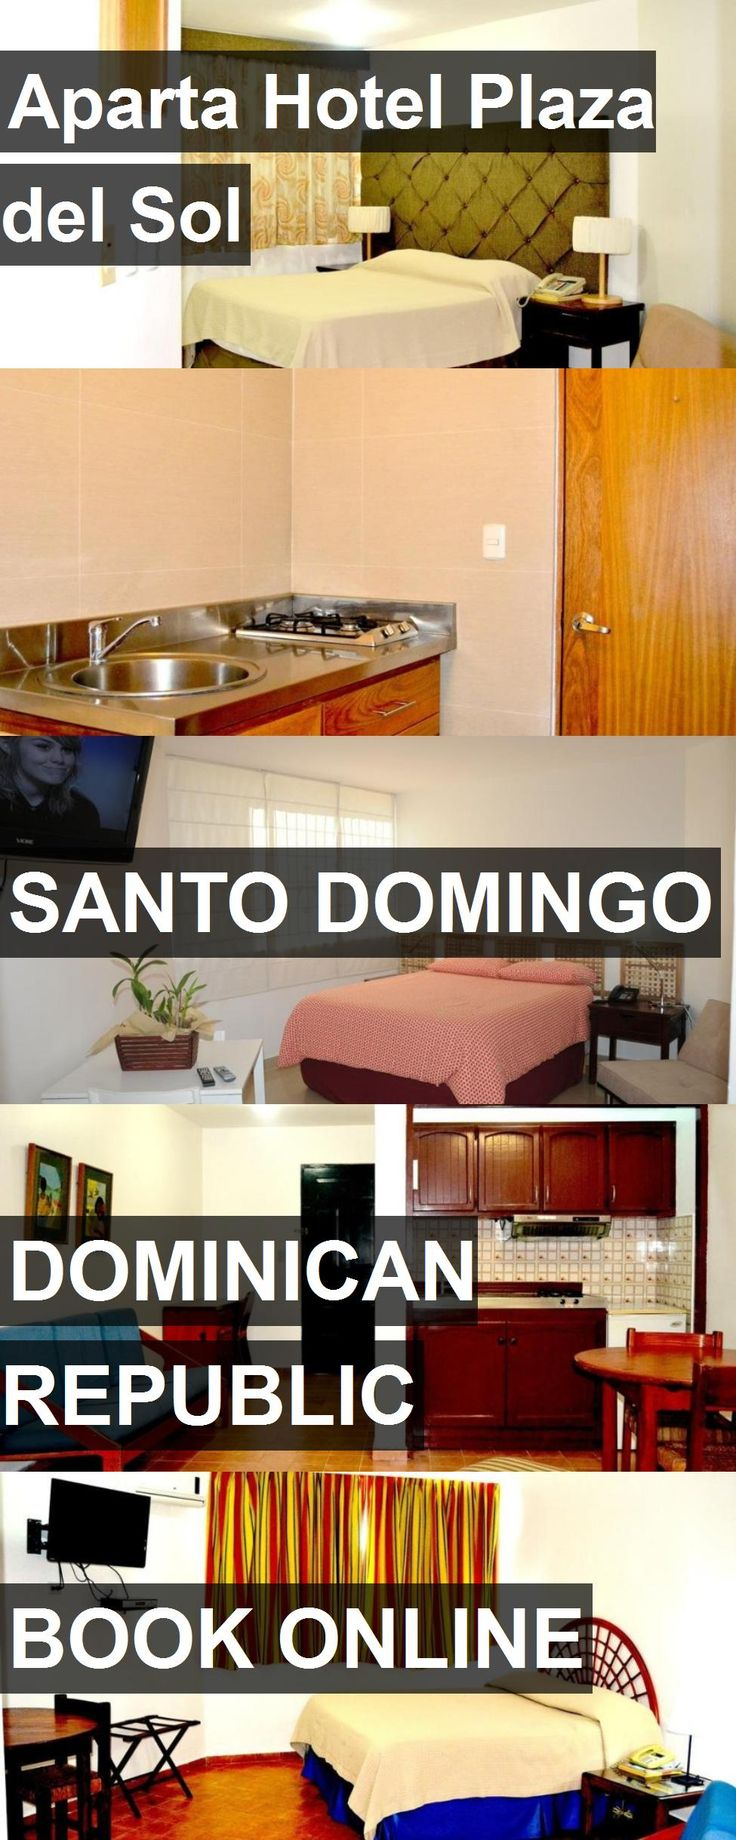 Aparta Hotel Plaza del Sol in Santo Domingo, Dominican Republic. For more information, photos, reviews and best prices please follow the link. #DominicanRepublic #SantoDomingo #travel #vacation #hotel